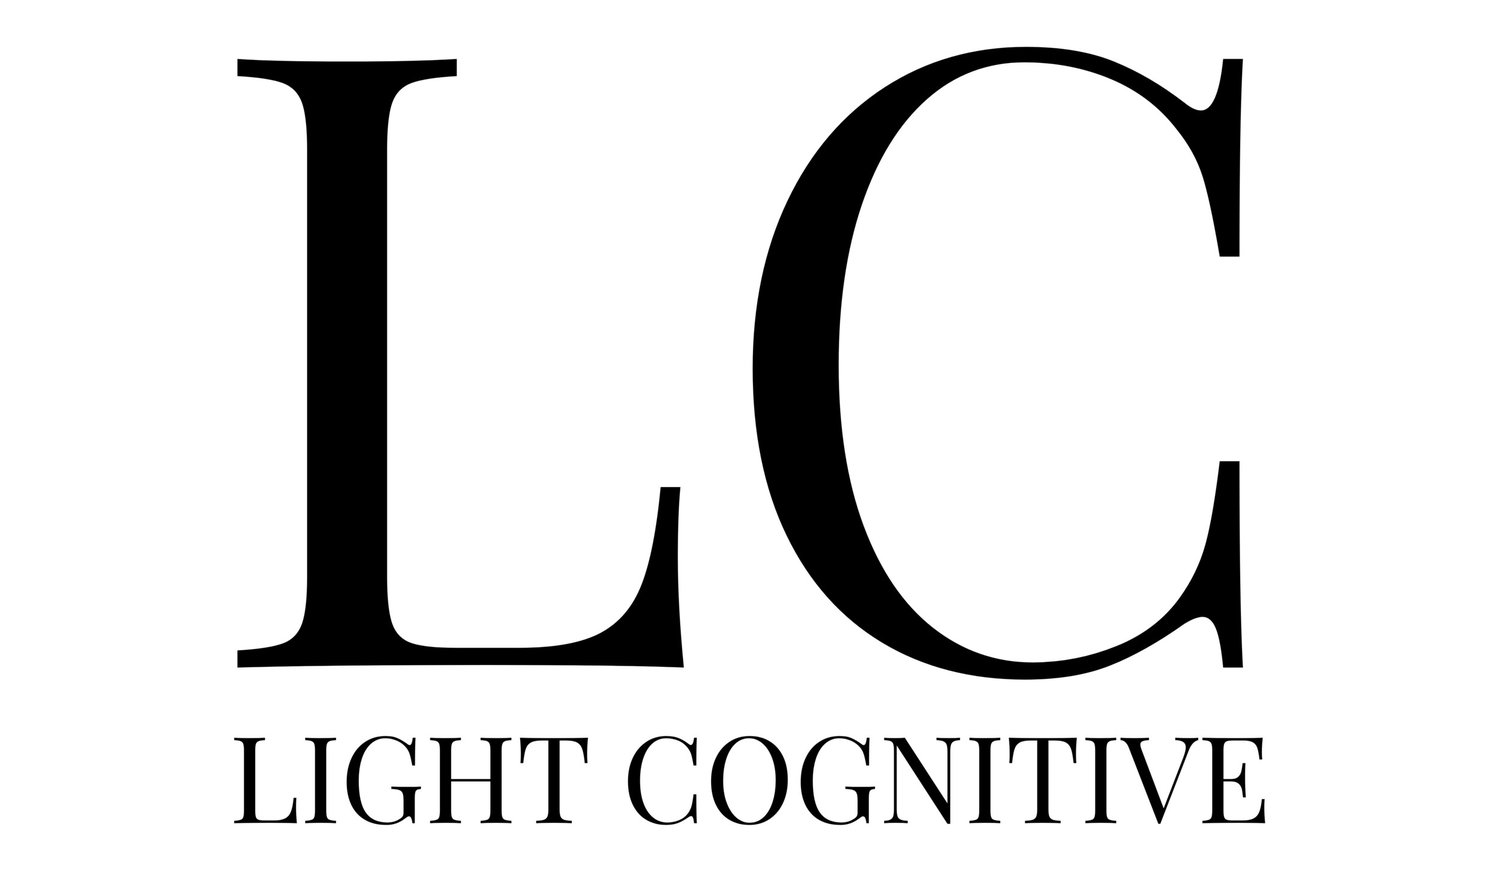 LIGHT COGNITIVE